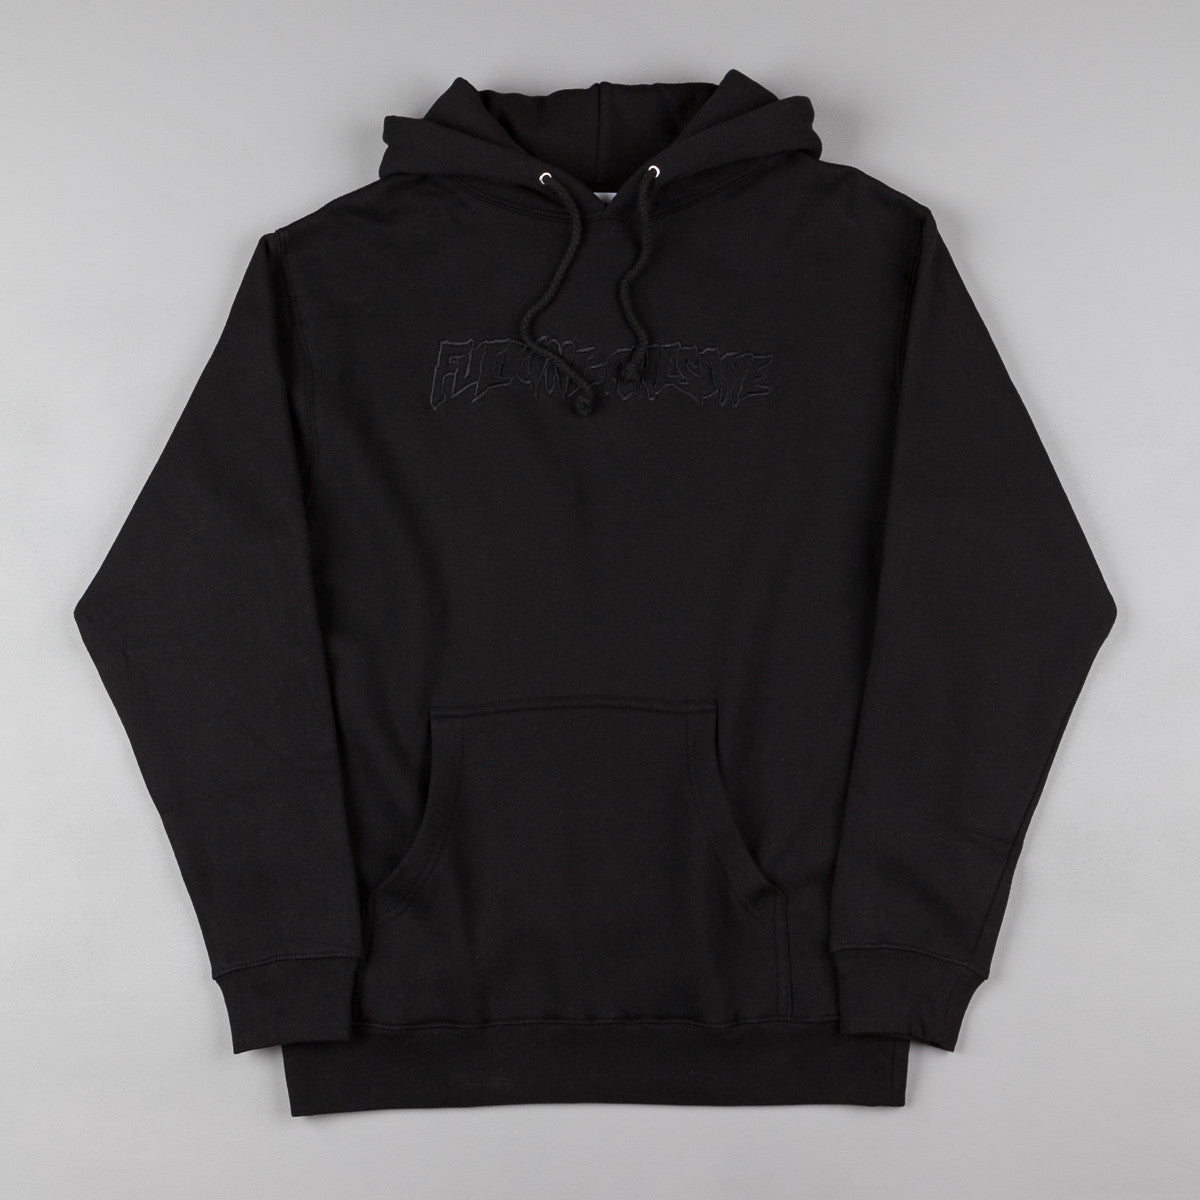 Fucking Awesome Embroidered Outline Hooded Sweatshirt -  Black on Black